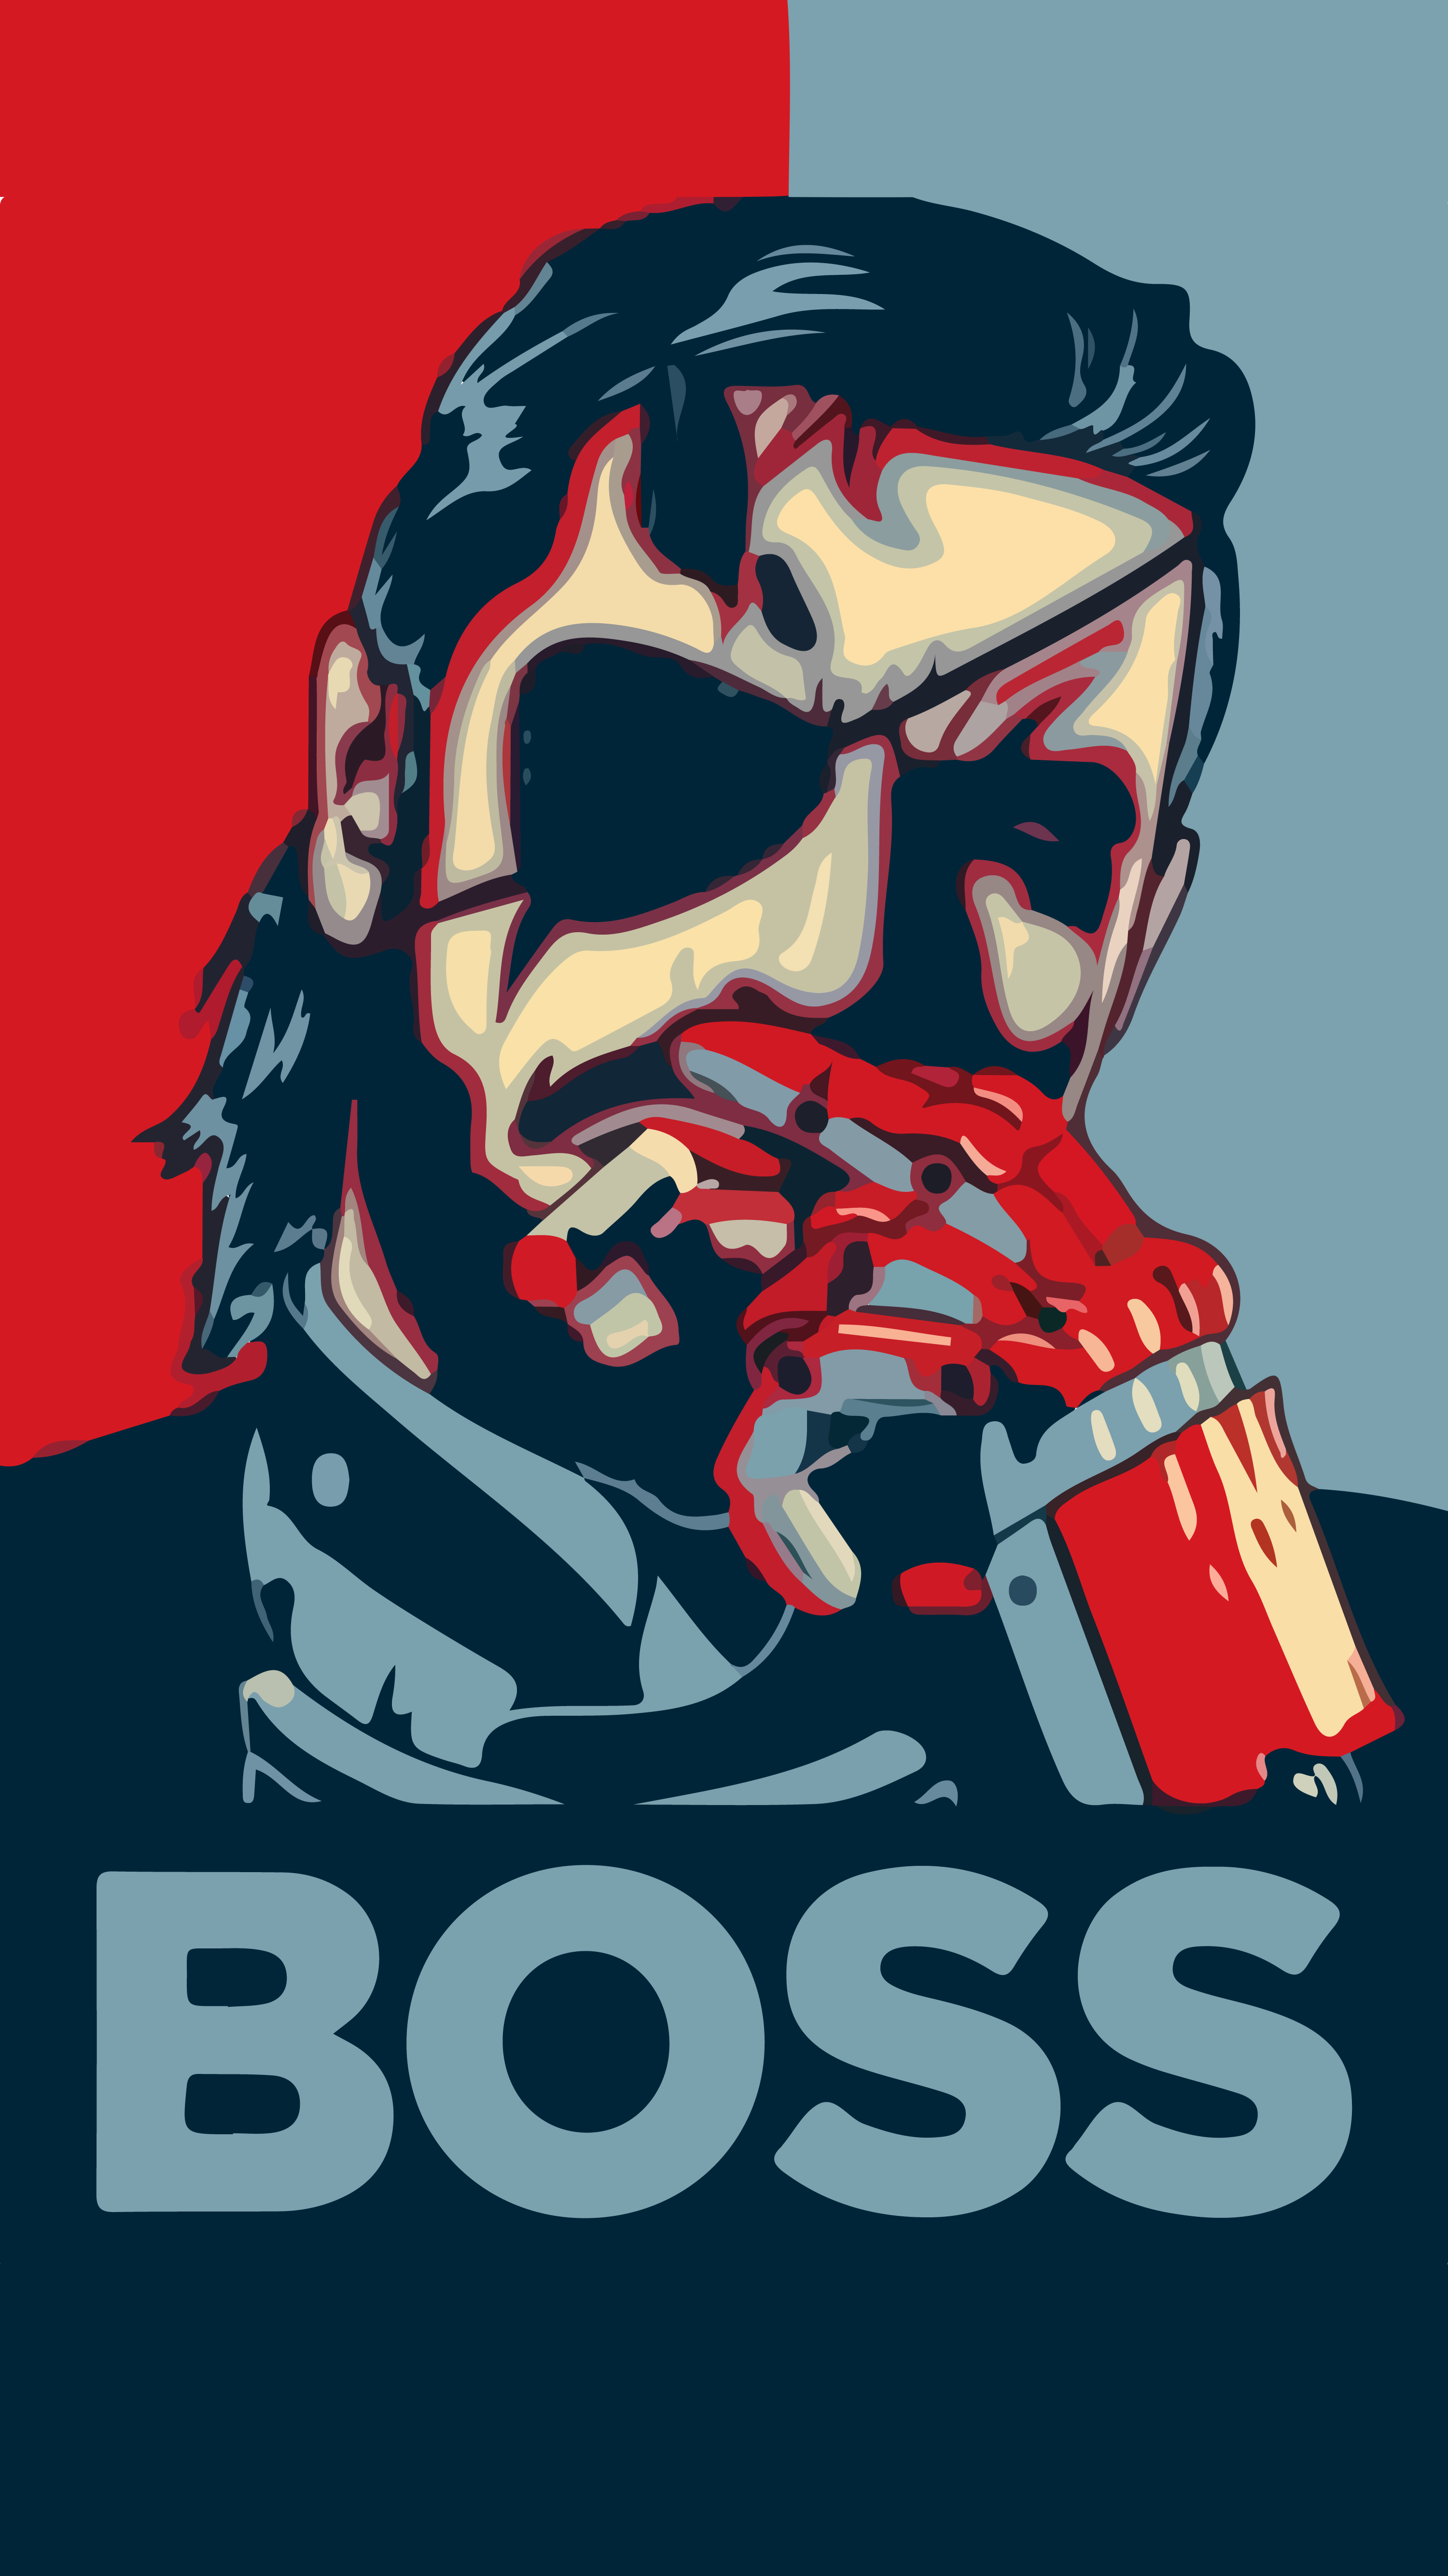 Boss I Just Edit That Pic To Make It A Wallpaper For Iphone